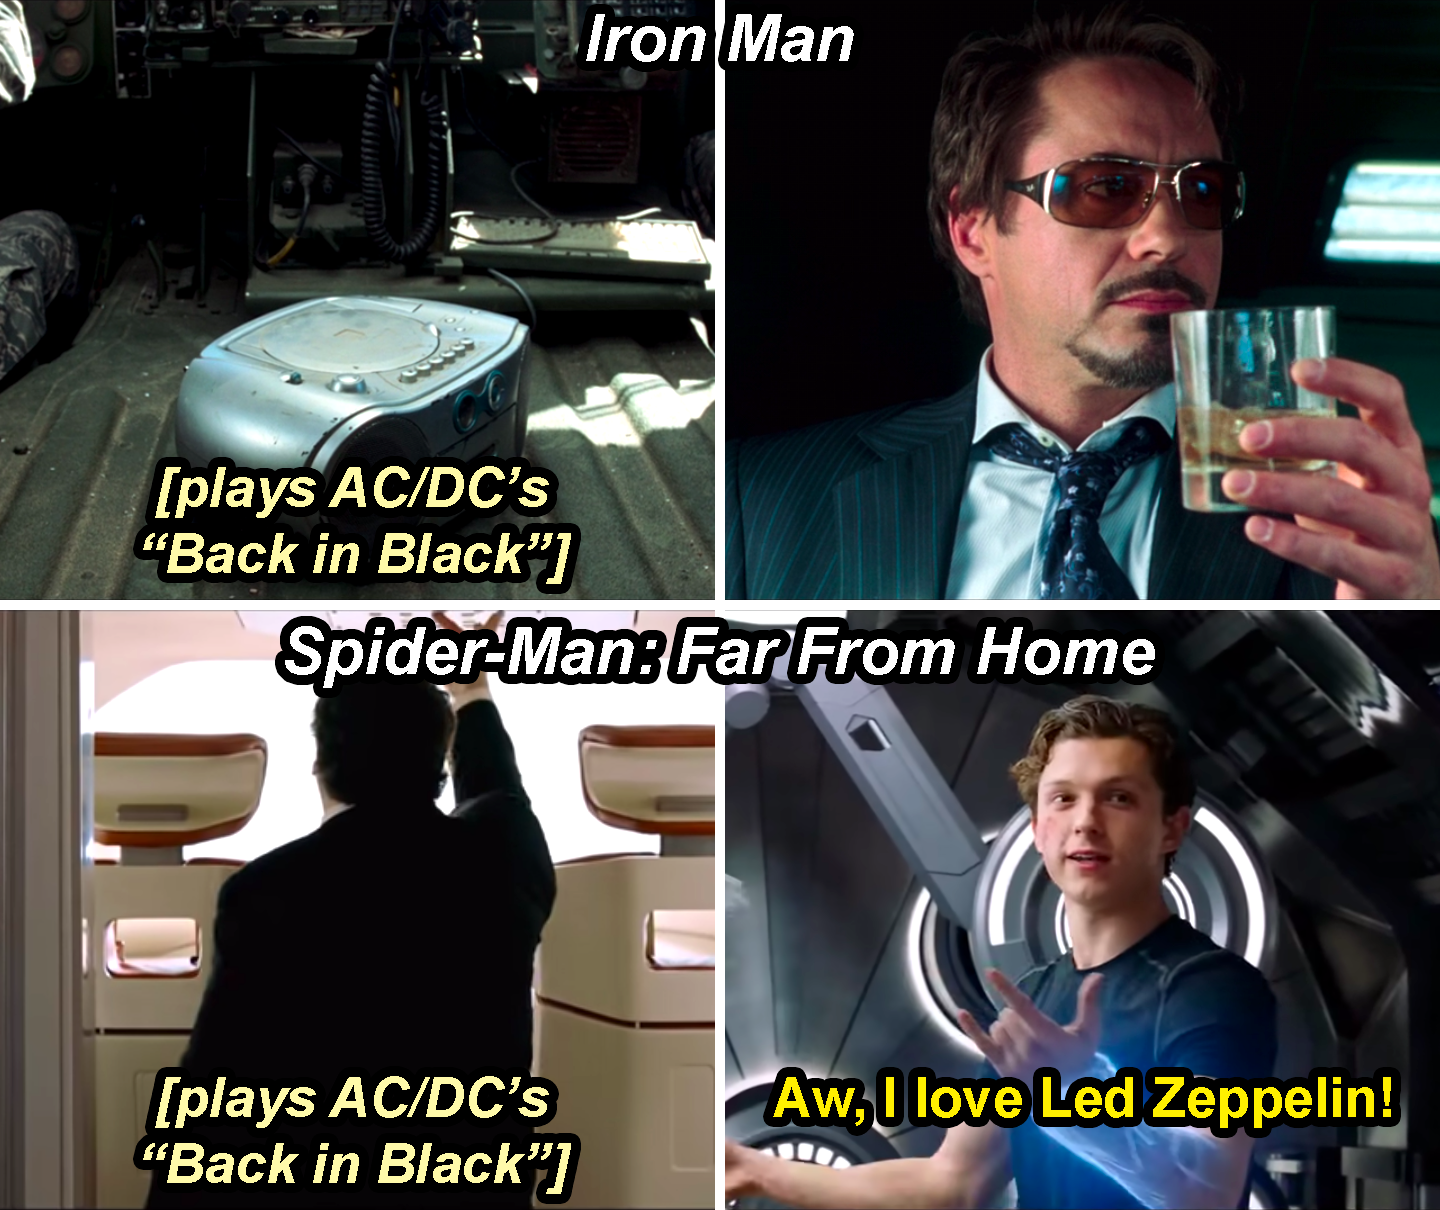 "A boombox playing AC/DC's Back in Black in Iron Man and Happy turning on Back in Black in Spider-Man: Far From Home with Peter responding, ""Aw, I love Led Zeppelin"""